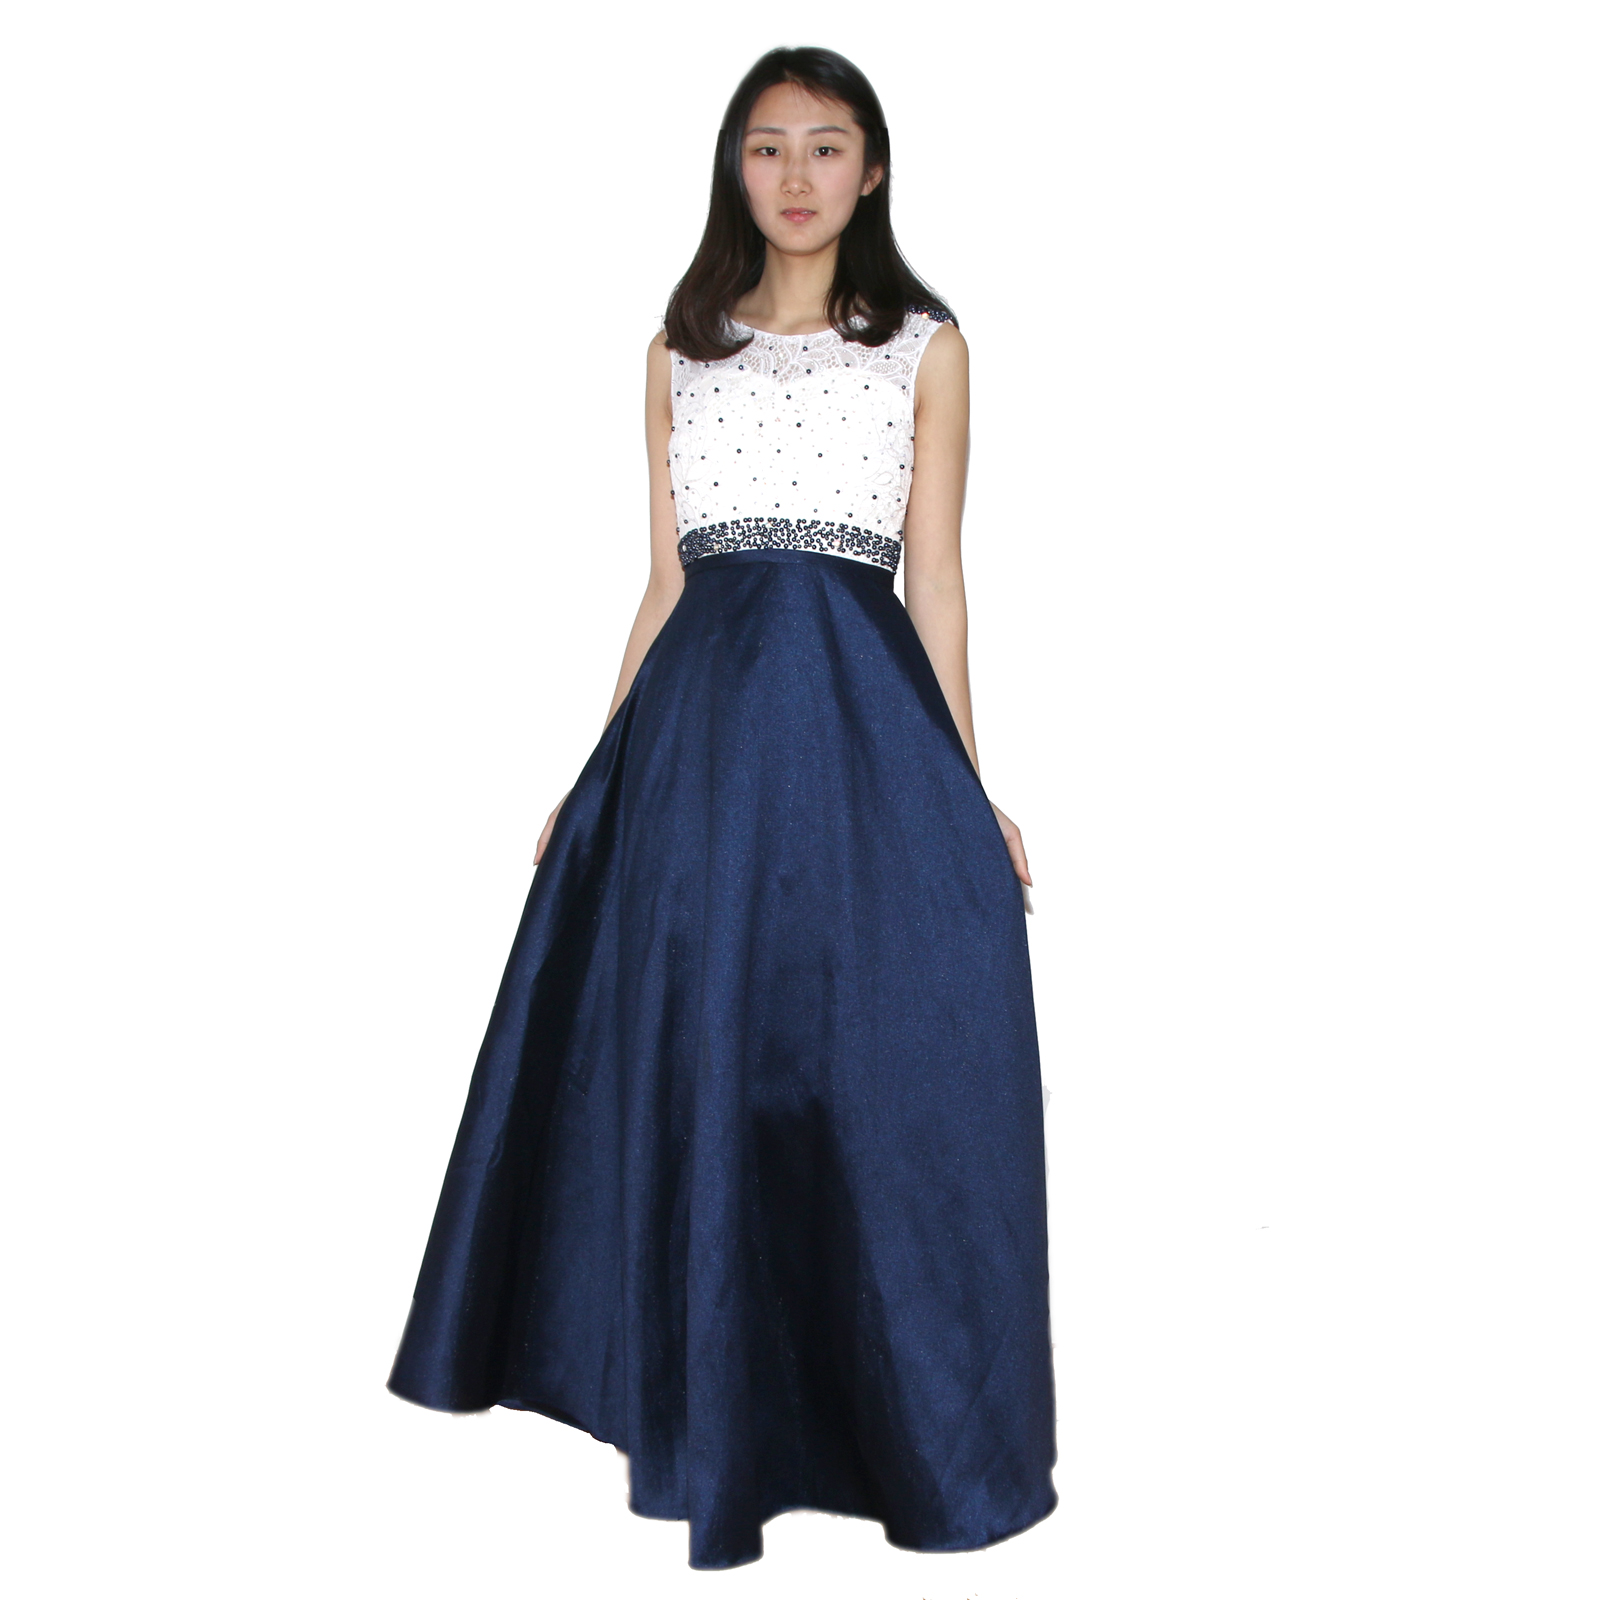 Compare Prices on Off White Evening Gowns- Online Shopping/Buy Low ...